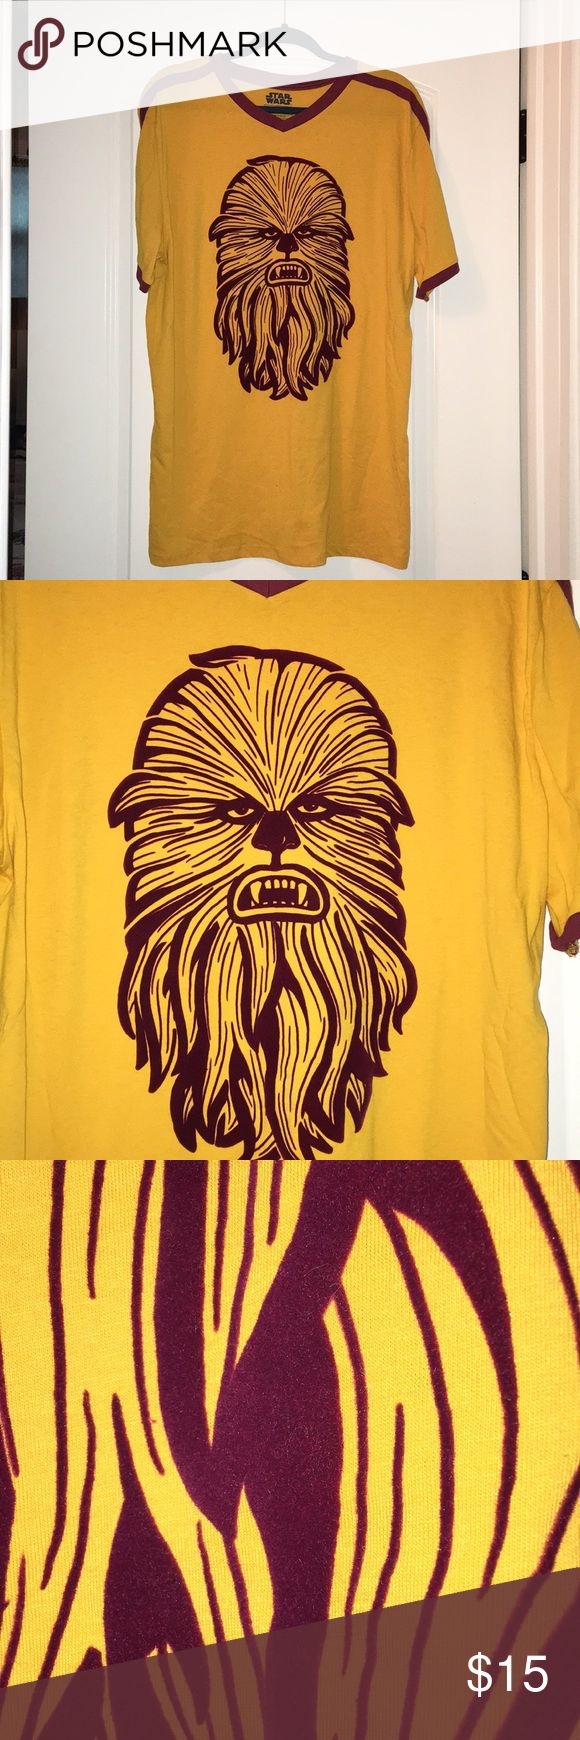 Star Wars Mens Chewbacca T-Shirt Size XL Star Wars Mens Chewbacca T-Shirt Size XL. New, never worn, tags removed. Chewbacca is almost a velvet imprint. Very cool! Striking colors. Perfect condition. Star Wars Shirts Tees - Short Sleeve